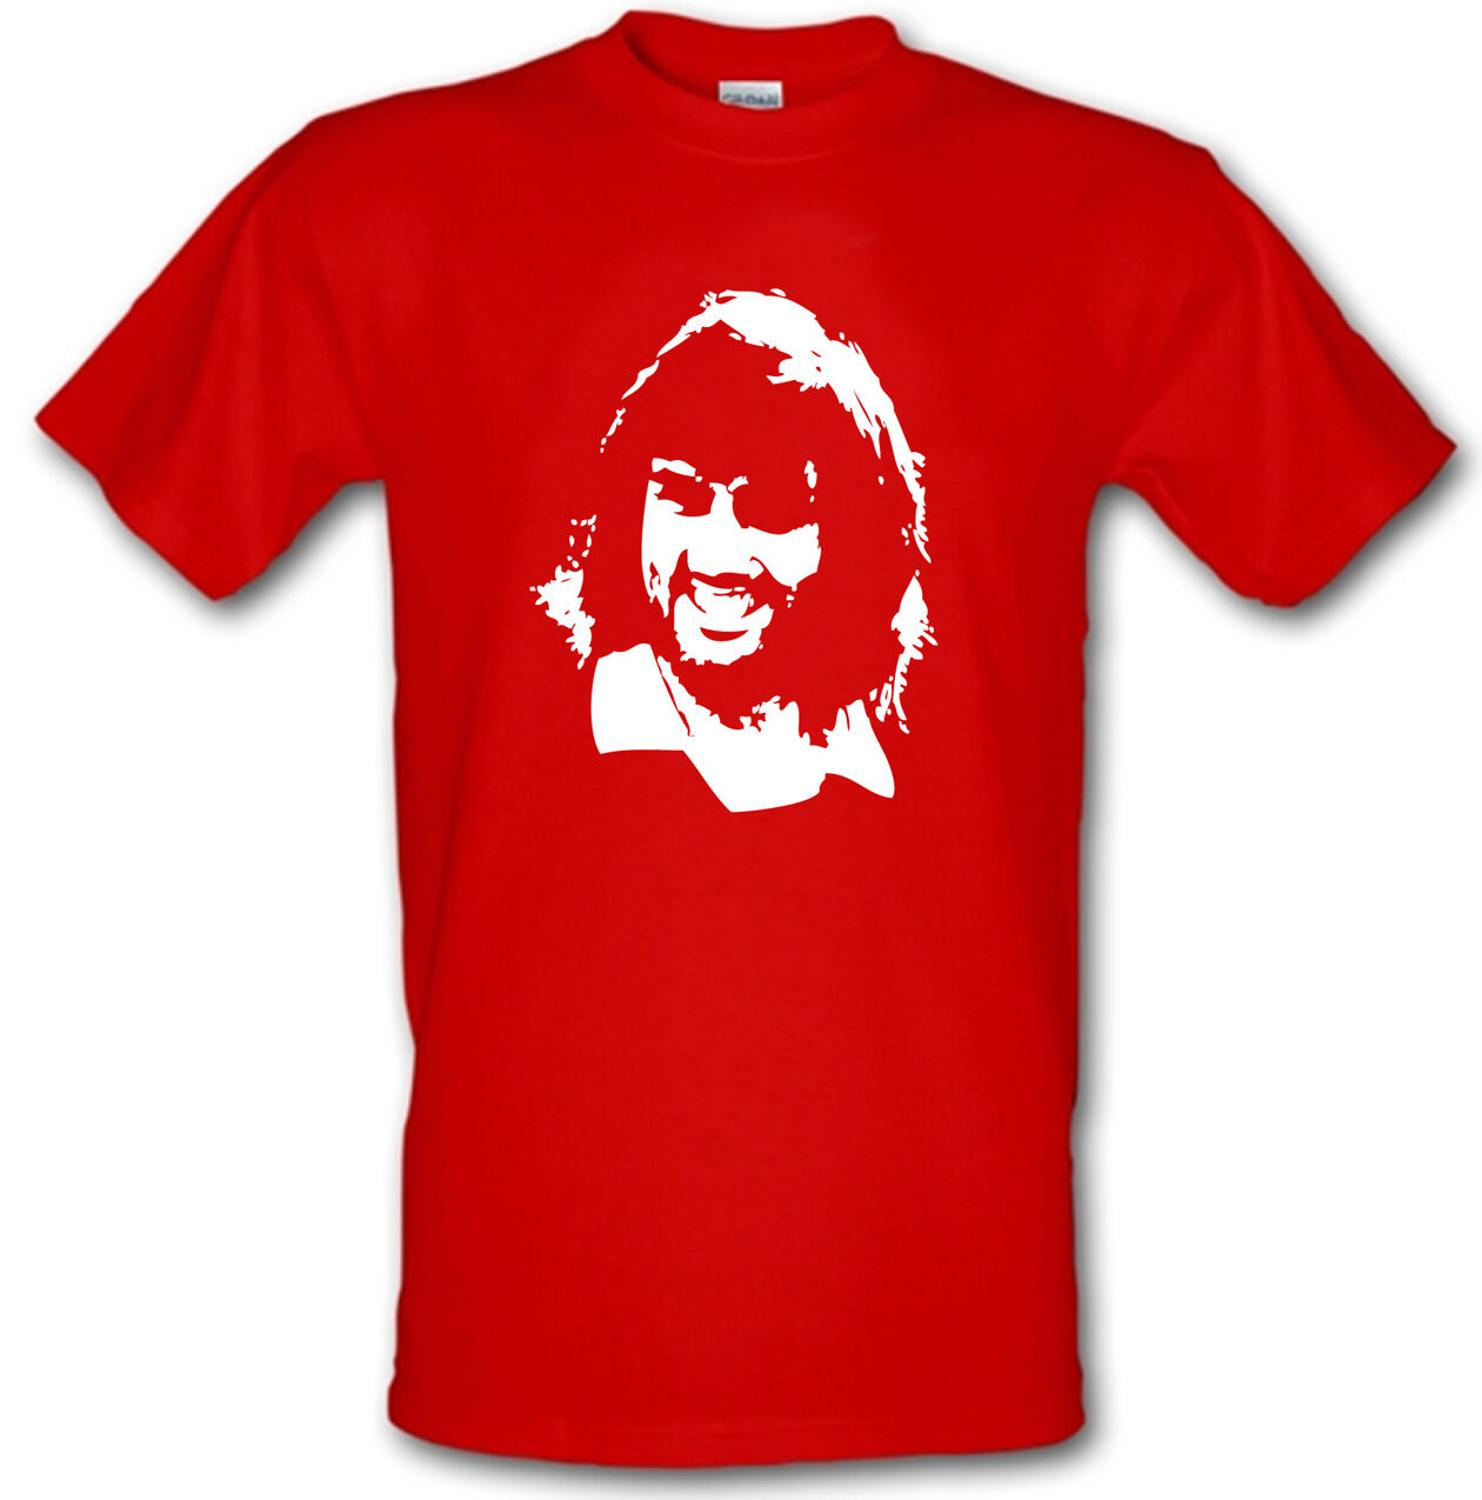 George Best Manchester Utd Football Legend Heavy Cotton T-Shirt brand Clothes Summer 2019 O-Neck Men'S Top Tee Awesome Shirts image